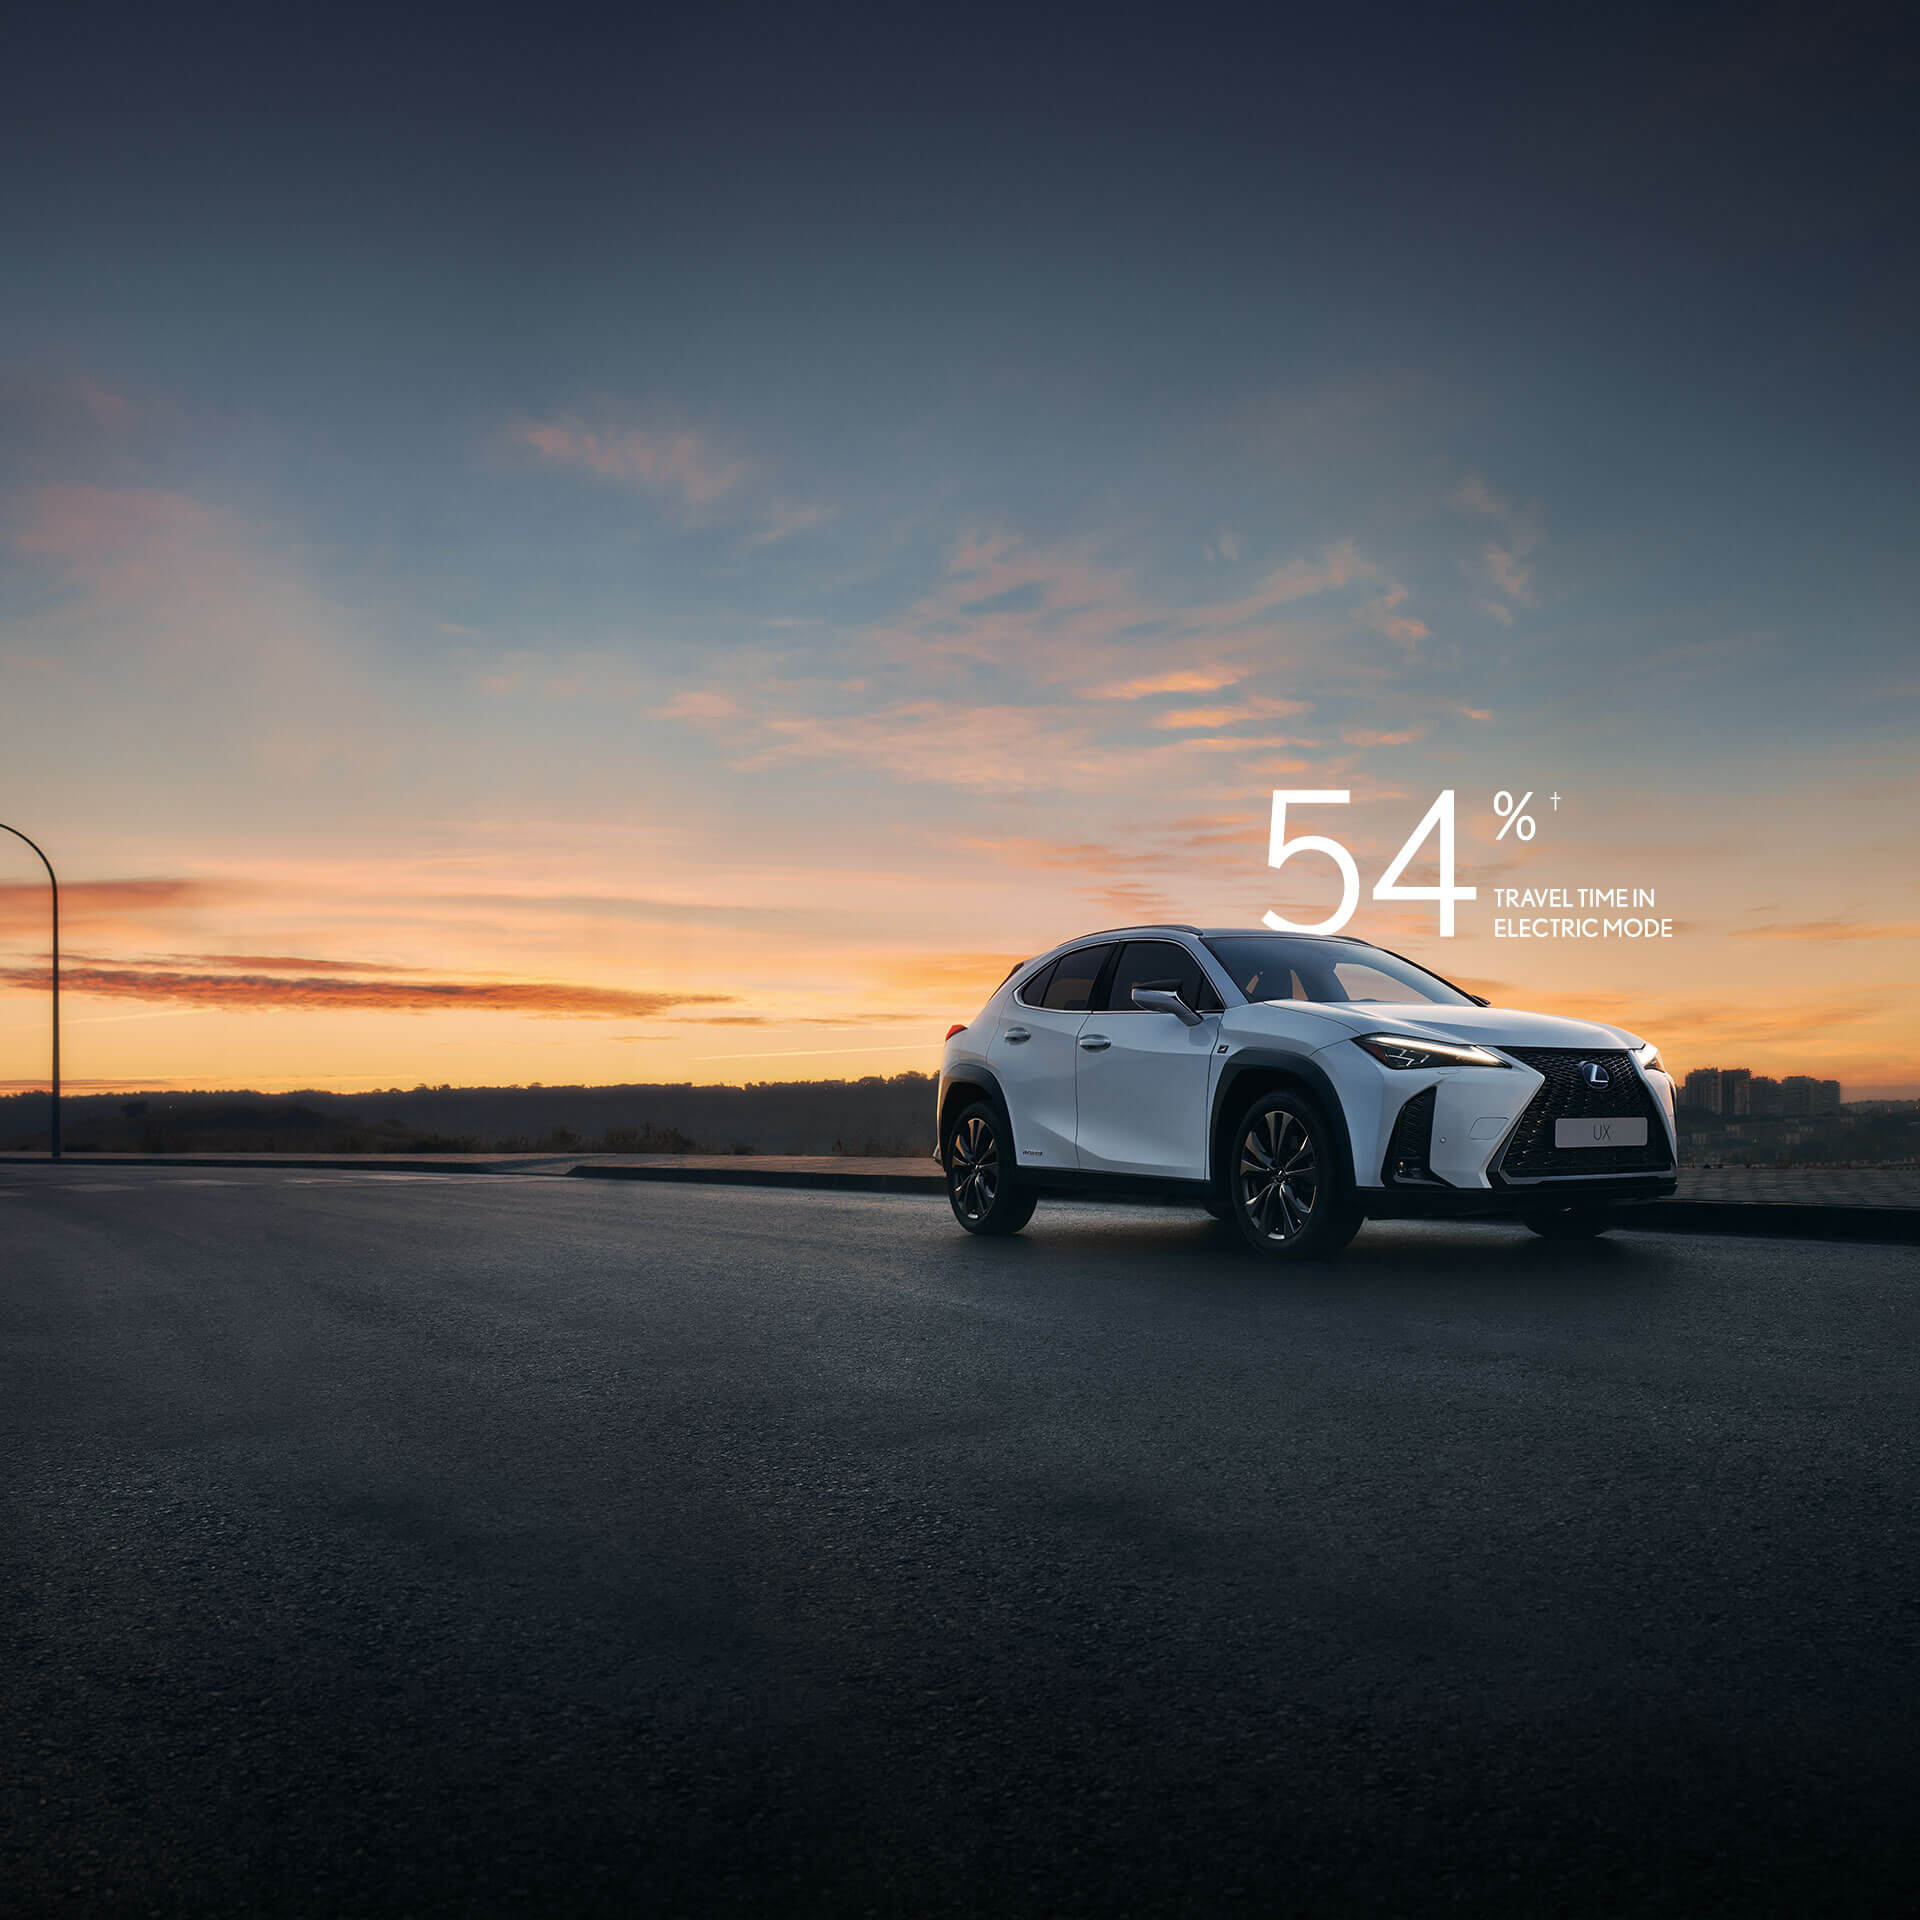 2019 Lexus Ux Hybrid: From £29,905 New